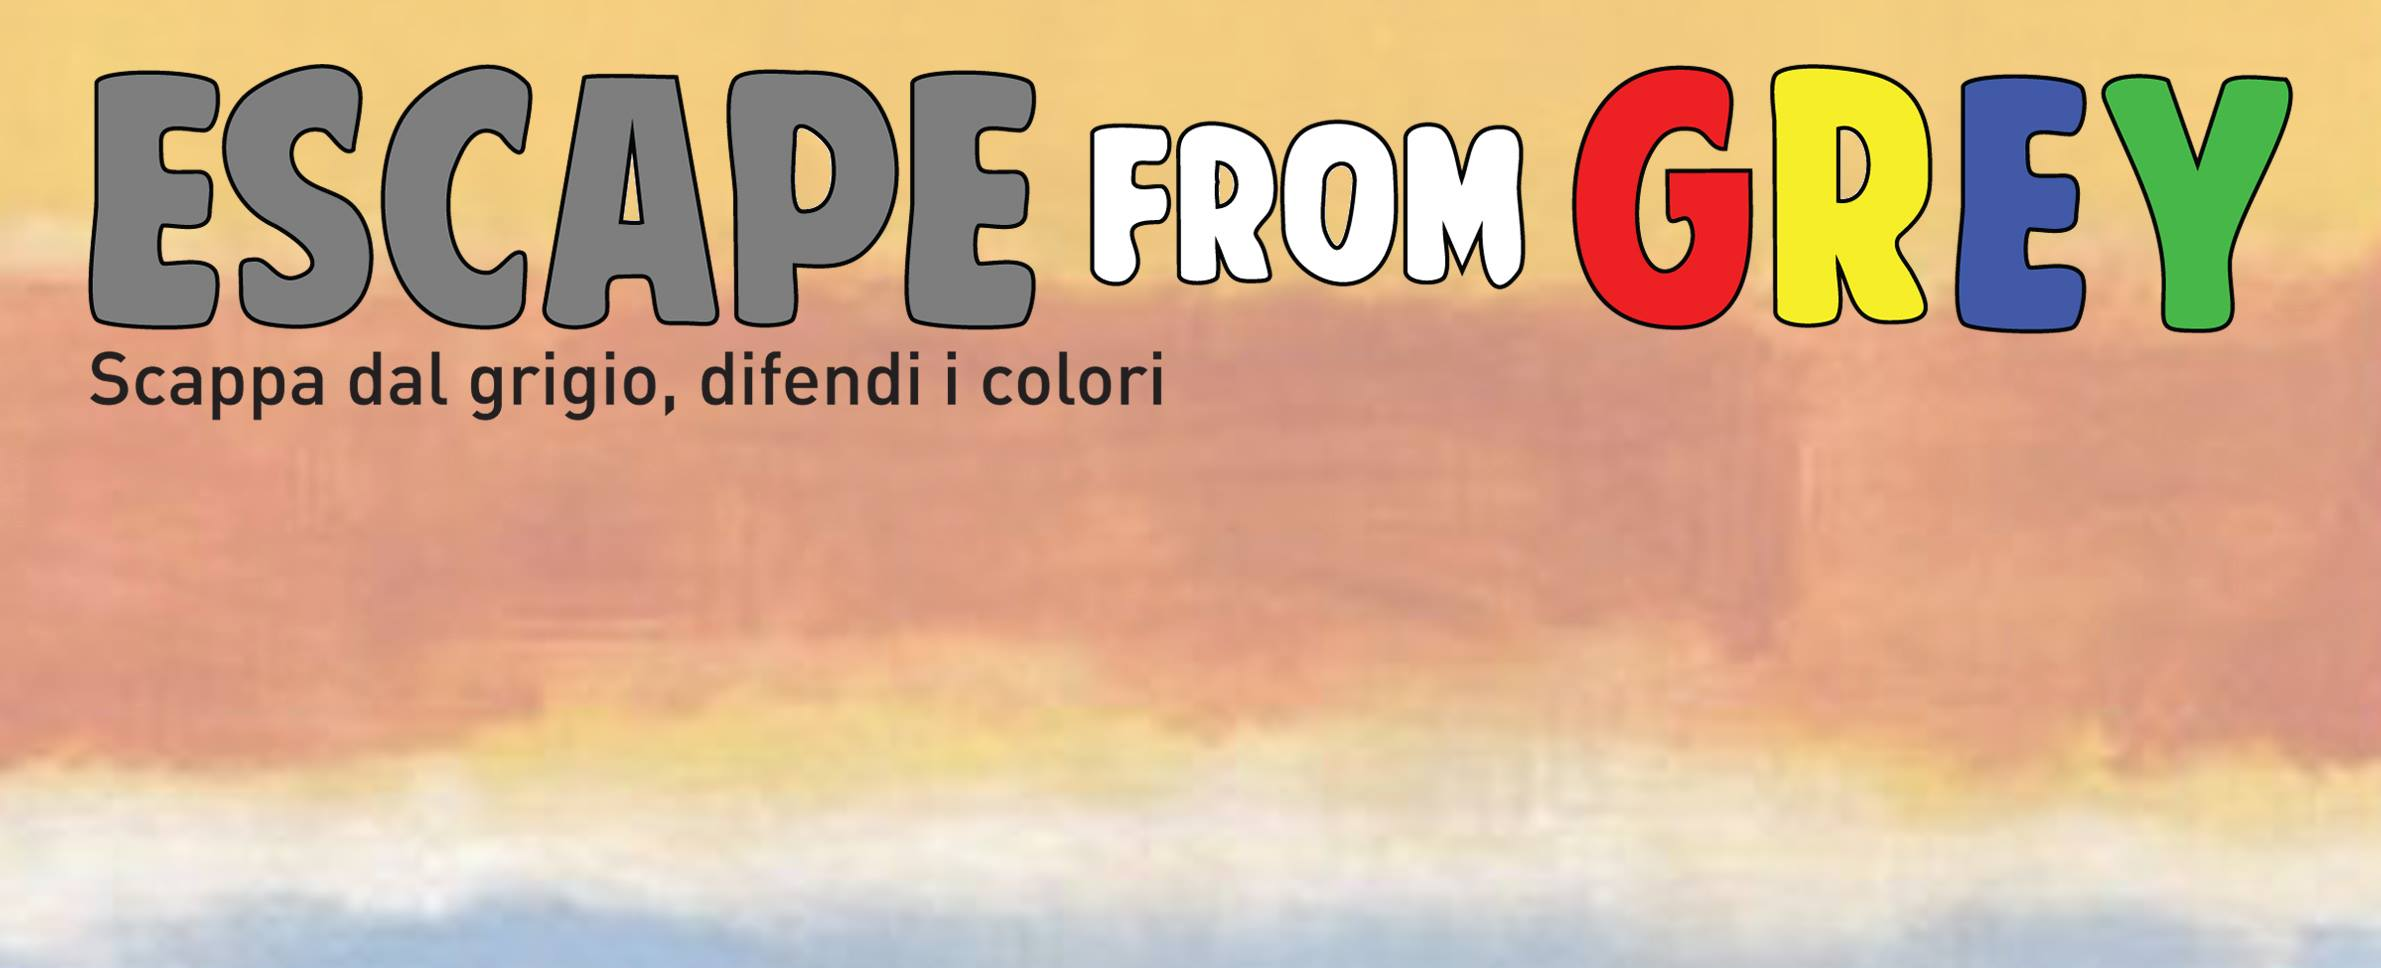 escape_from_grey_banner